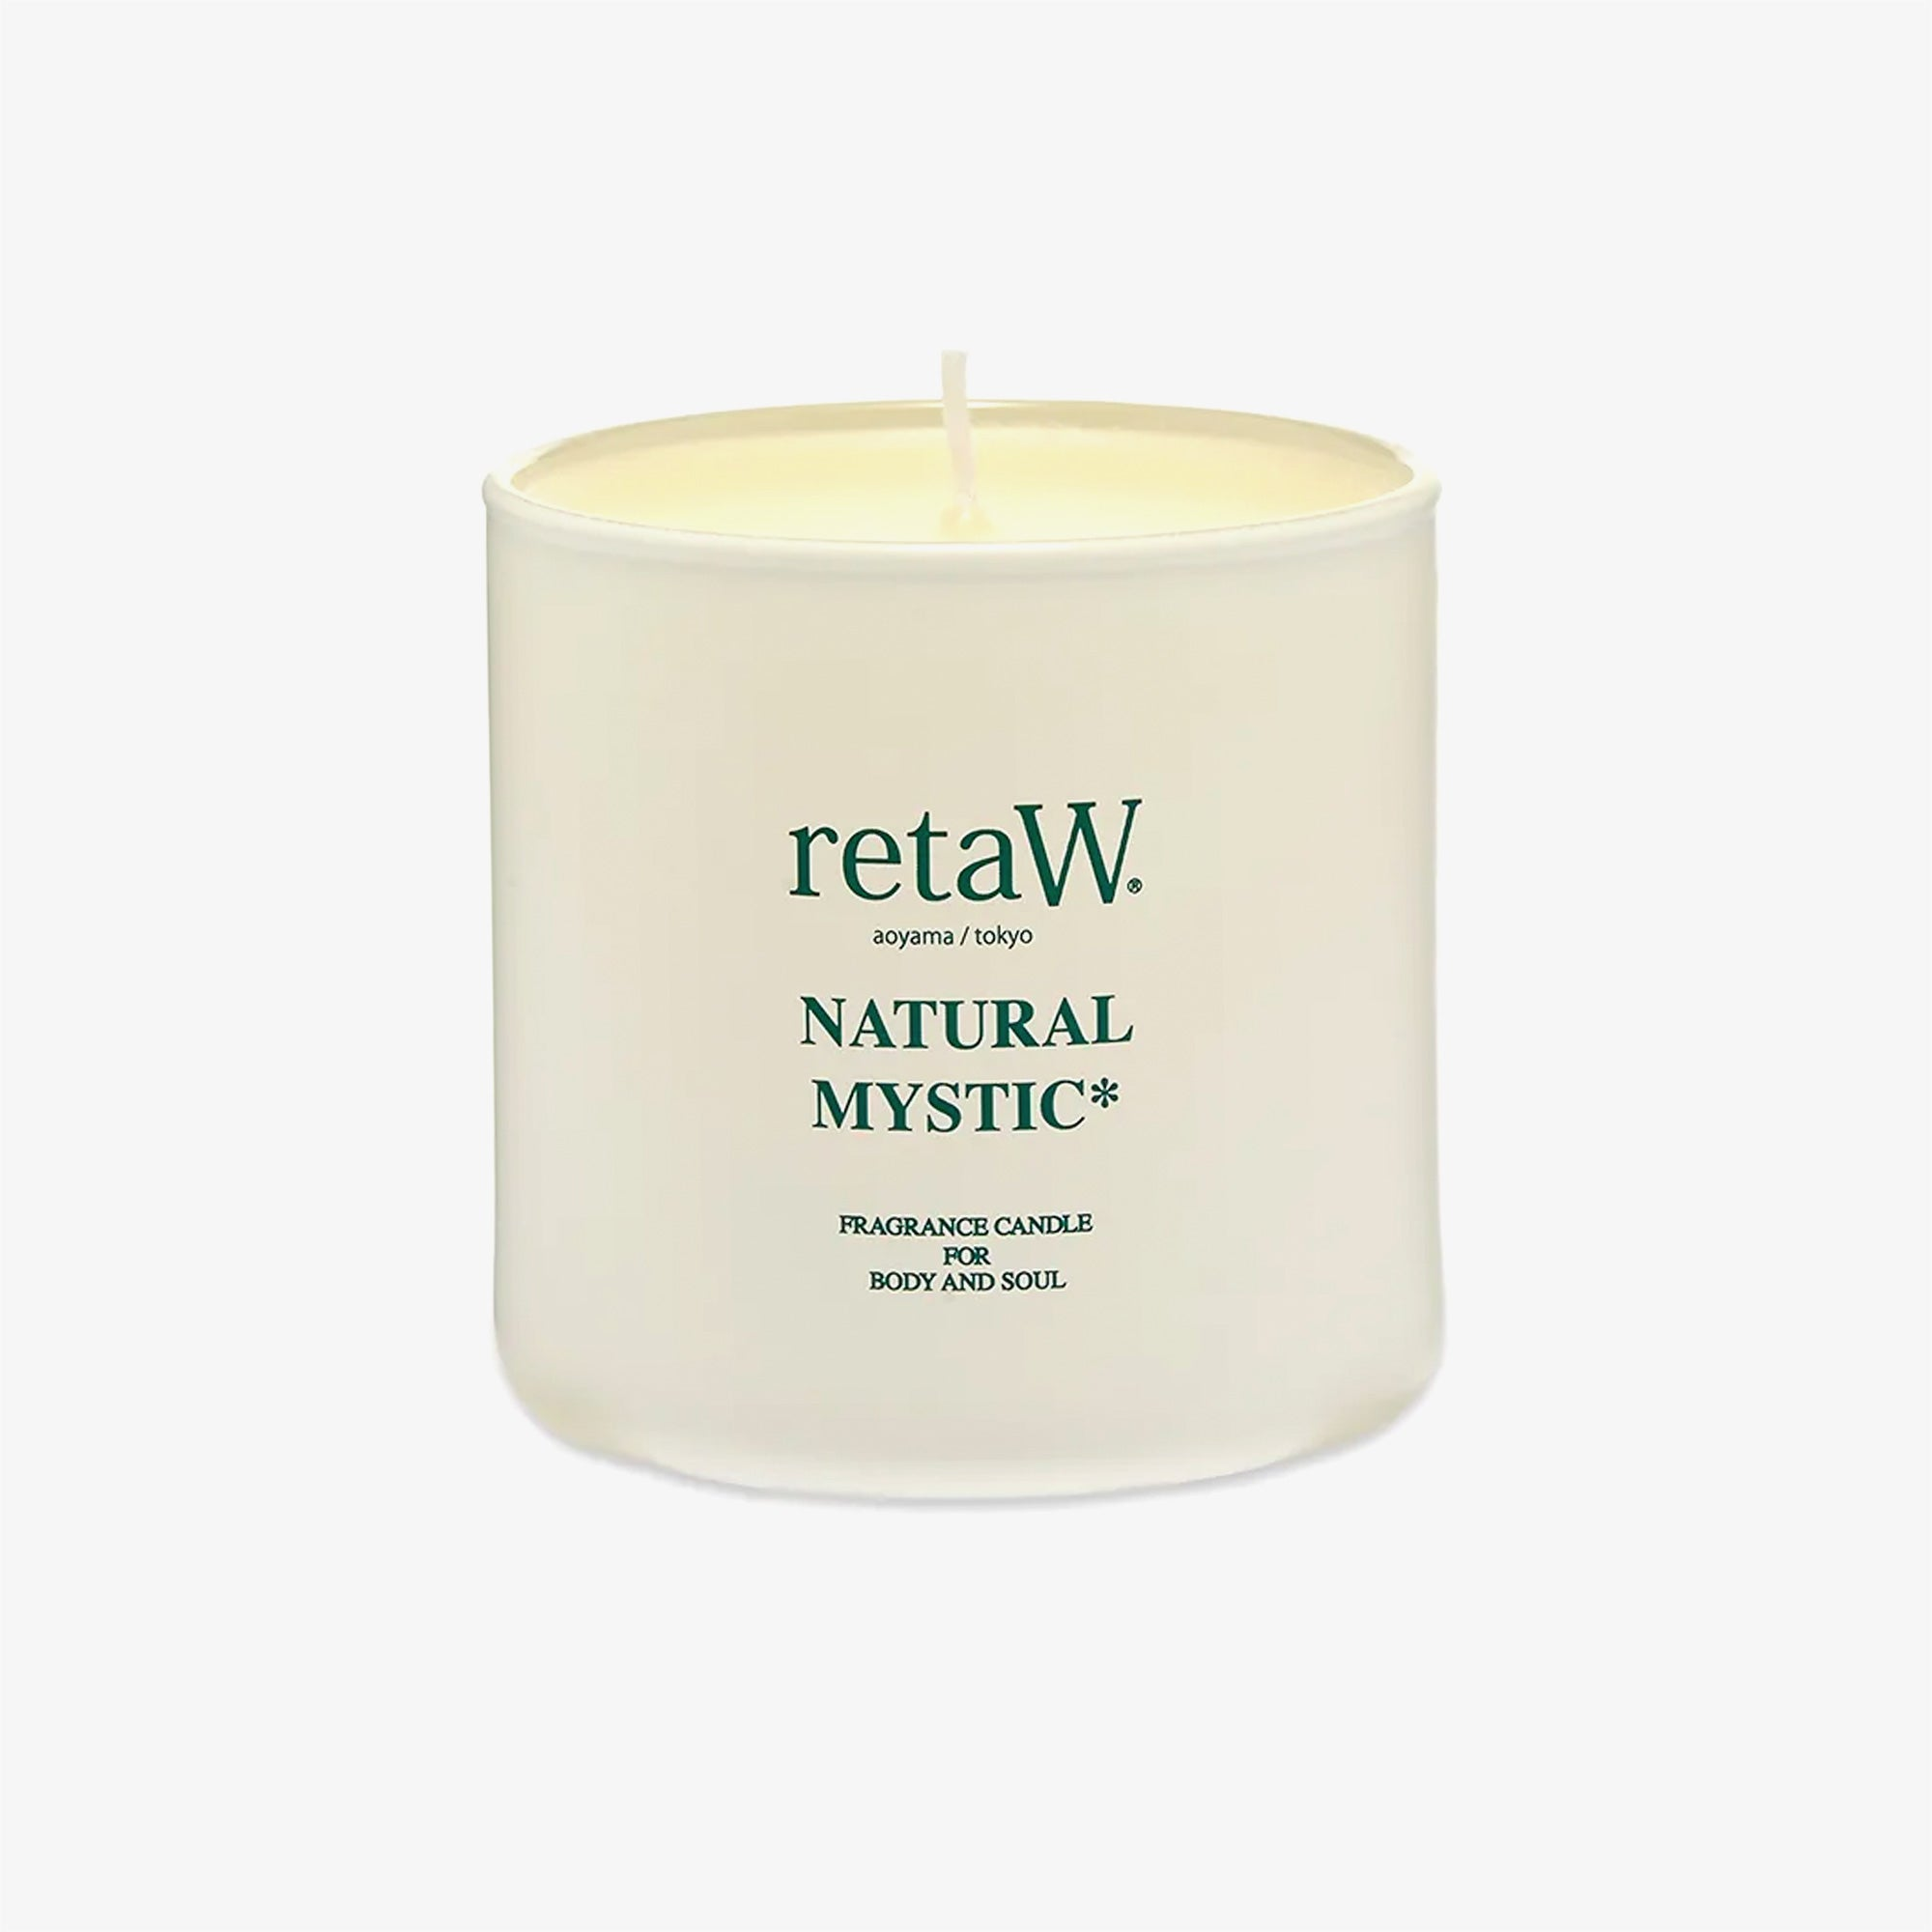 retaW Fragrance Candle - Natural Mystic 1